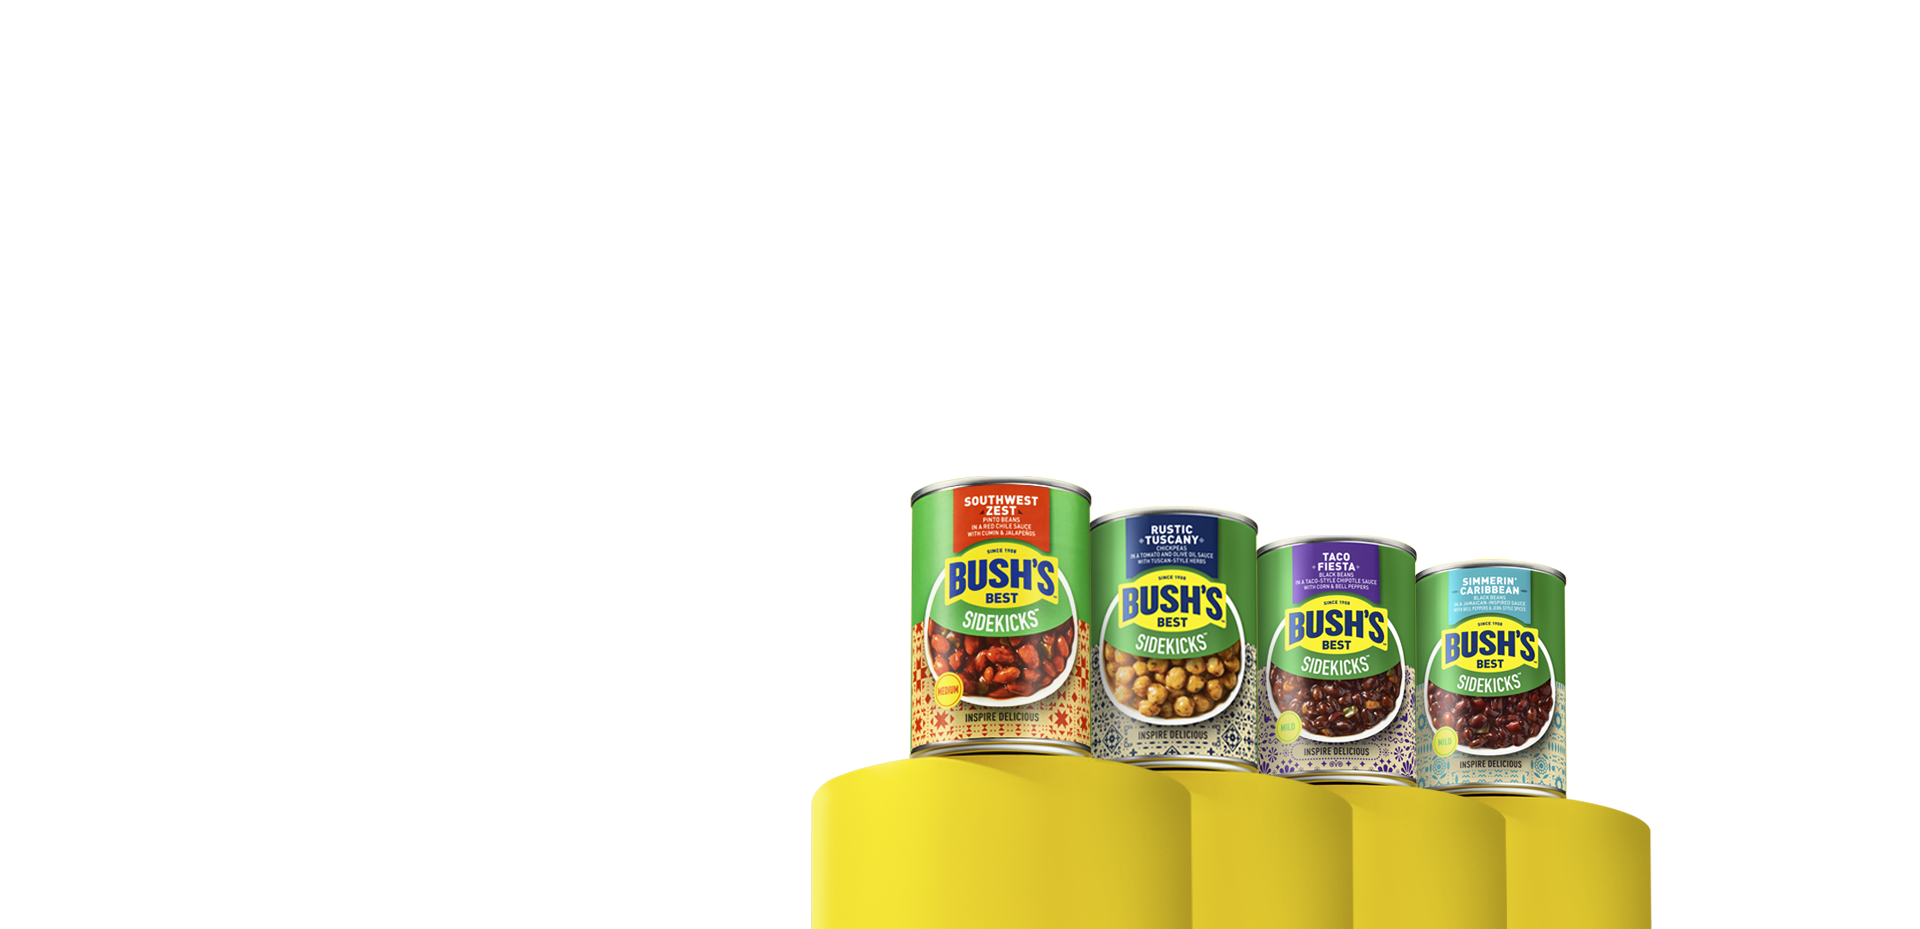 A can of Bush's Best Sidekicks Southwestern Zest Pinto beans sitting on a yellow column